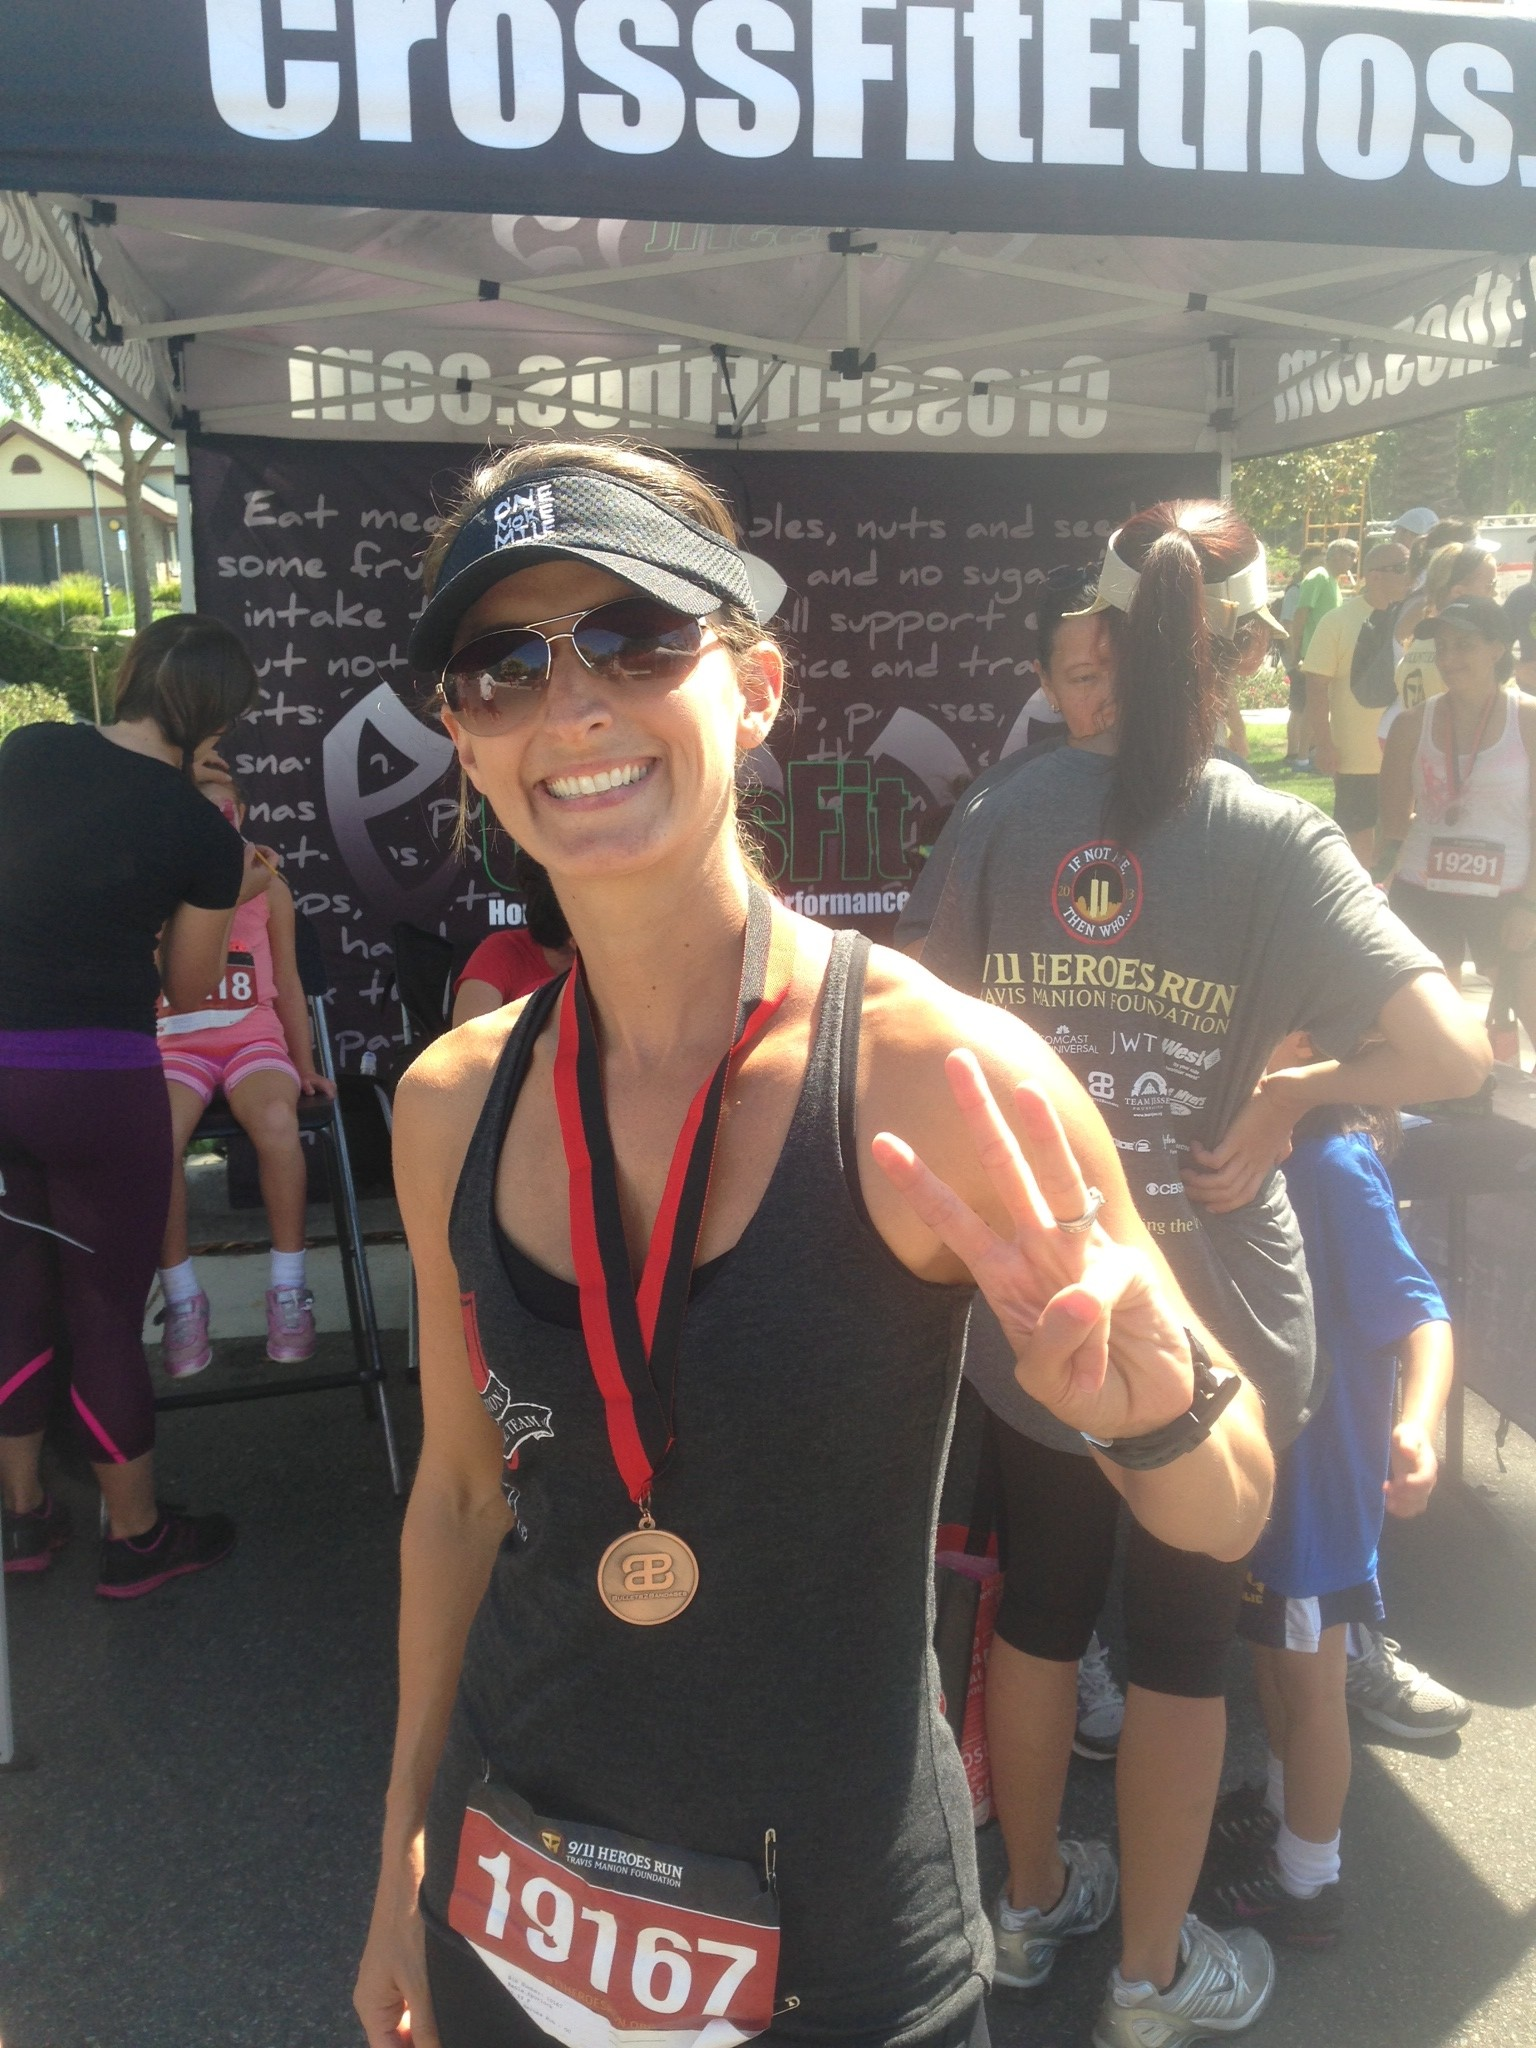 IMG_8051Congratulations to Ruination member Paola Spurlock for her 3rd place finish at the local 9/11 Hero Run